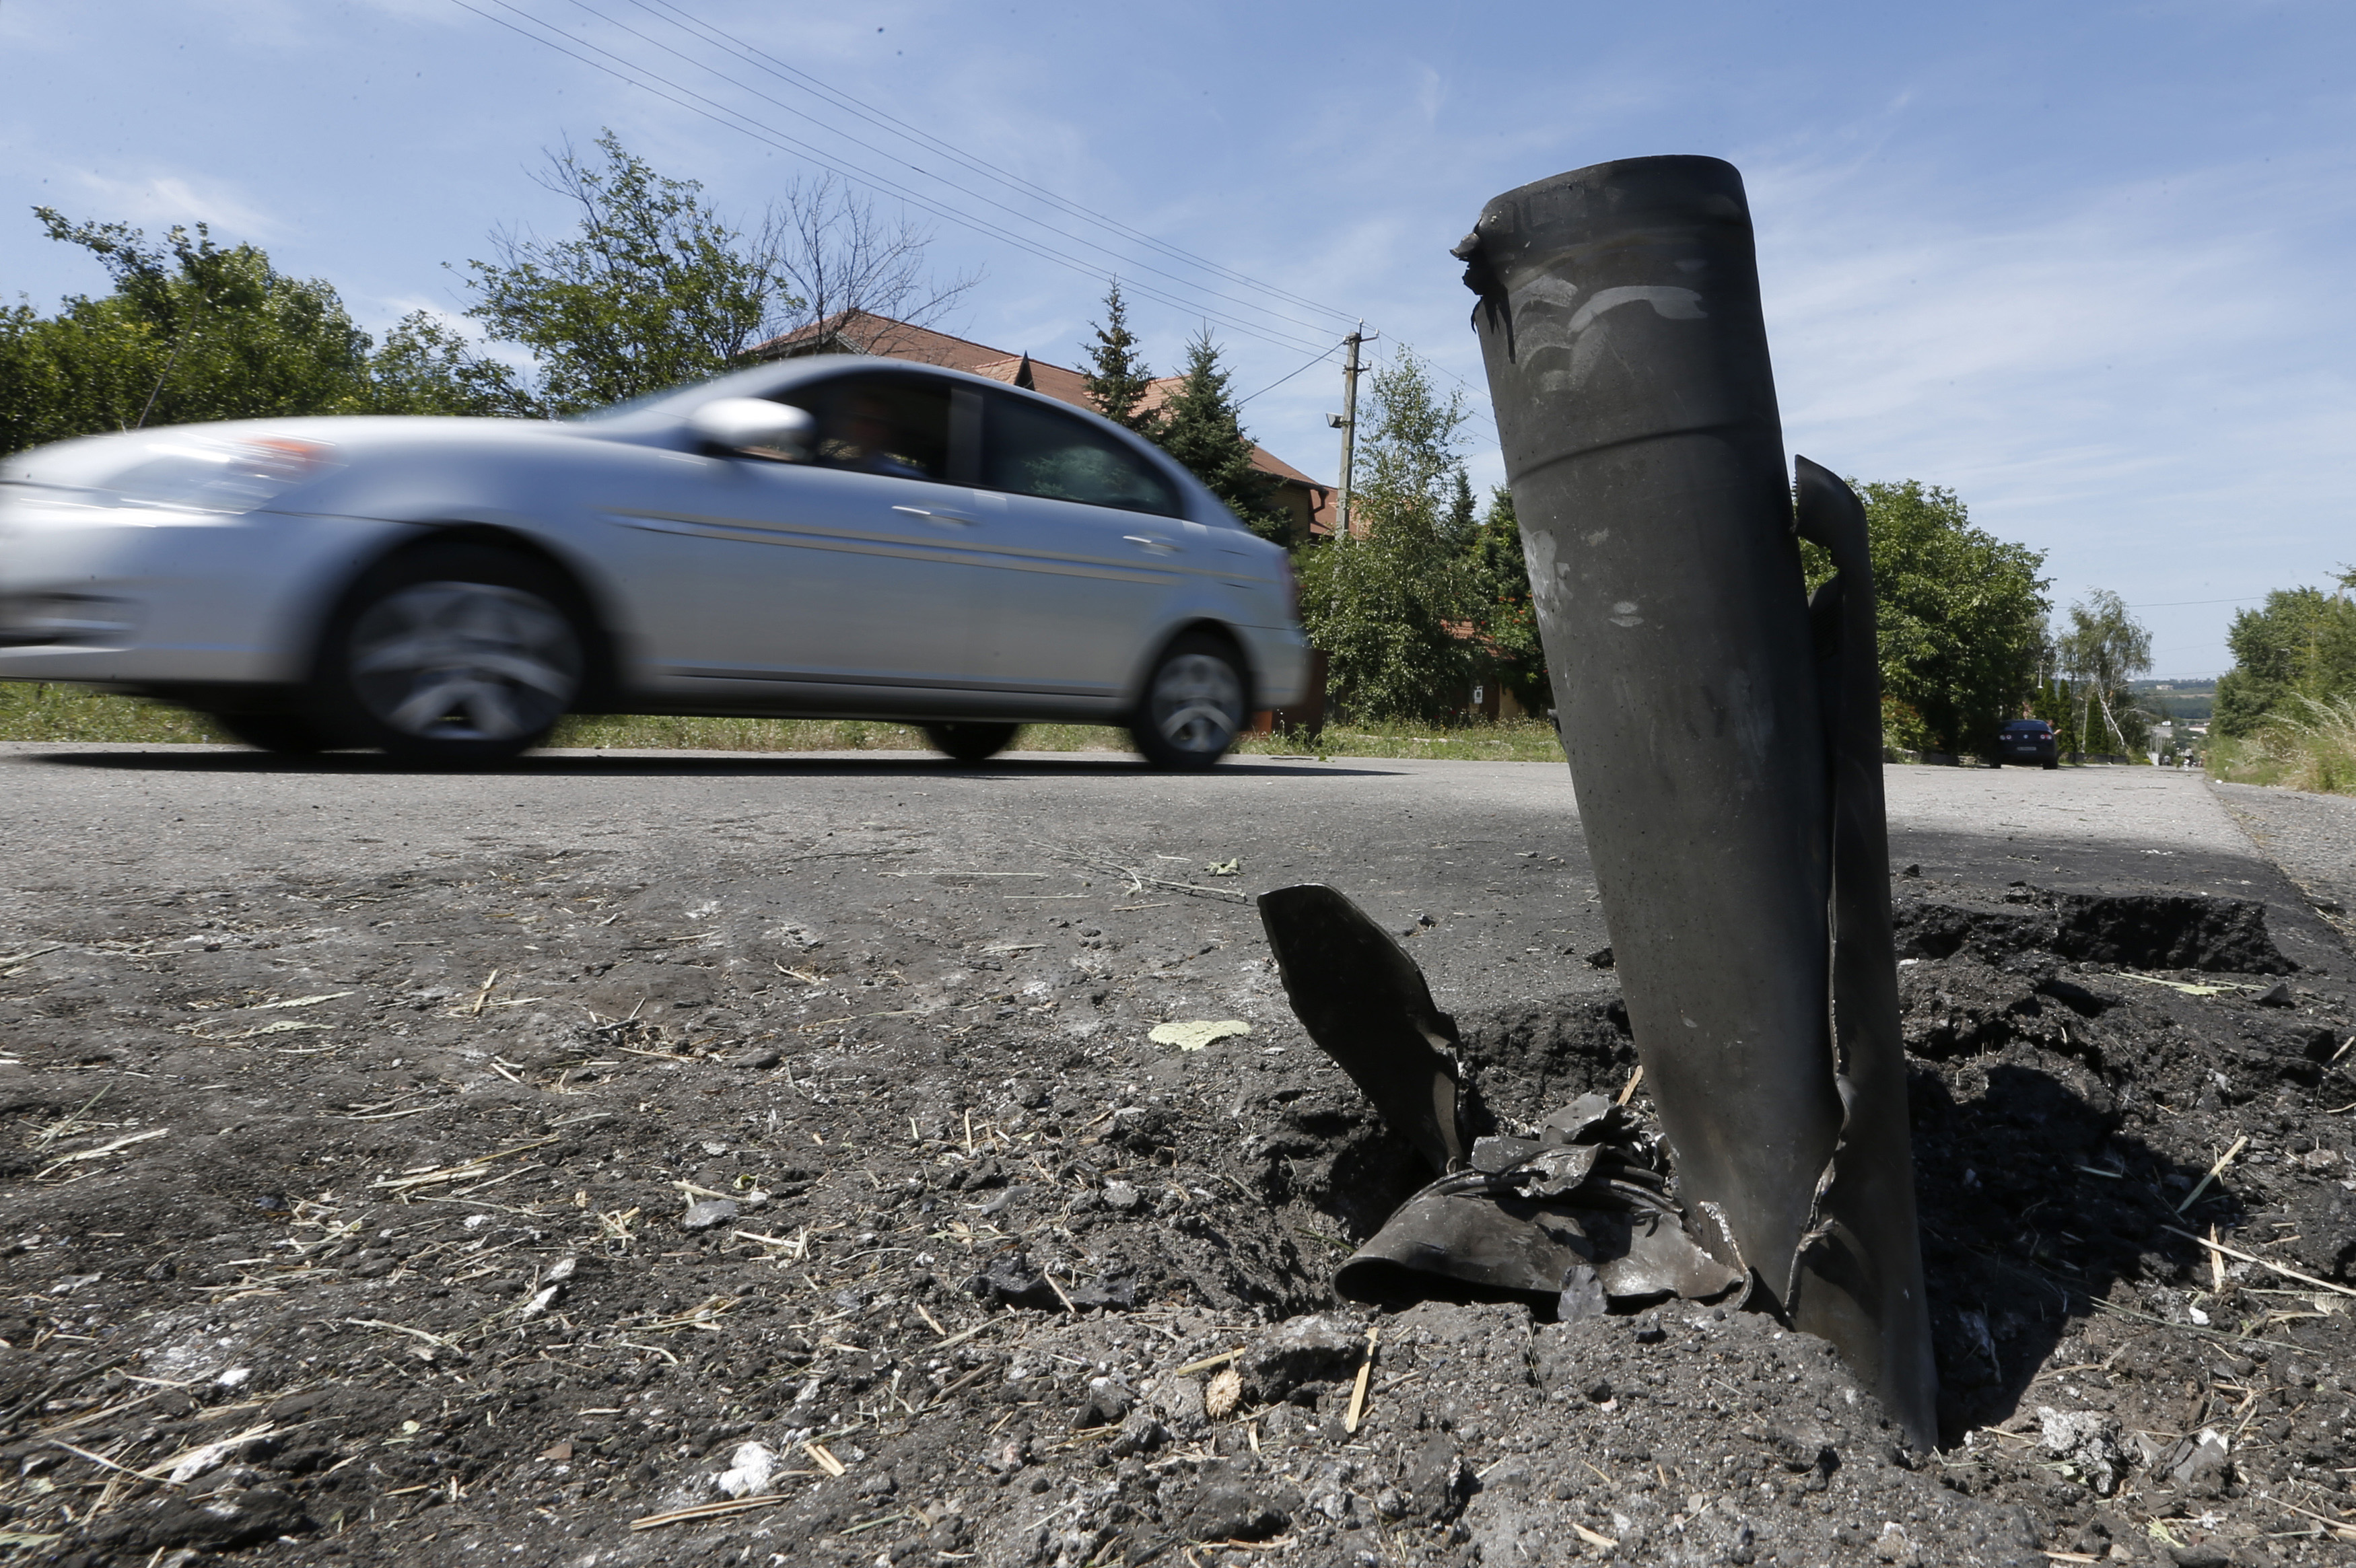 A car drives past the remains of a spent ammunition on the suburbs of Donetsk, Tuesday. Intense fighting between Ukrainian troops and pro-Russian rebels in eastern Ukraine killed dozens of civilians, soldiers and rebels, as Kiev pressed on with an offensi